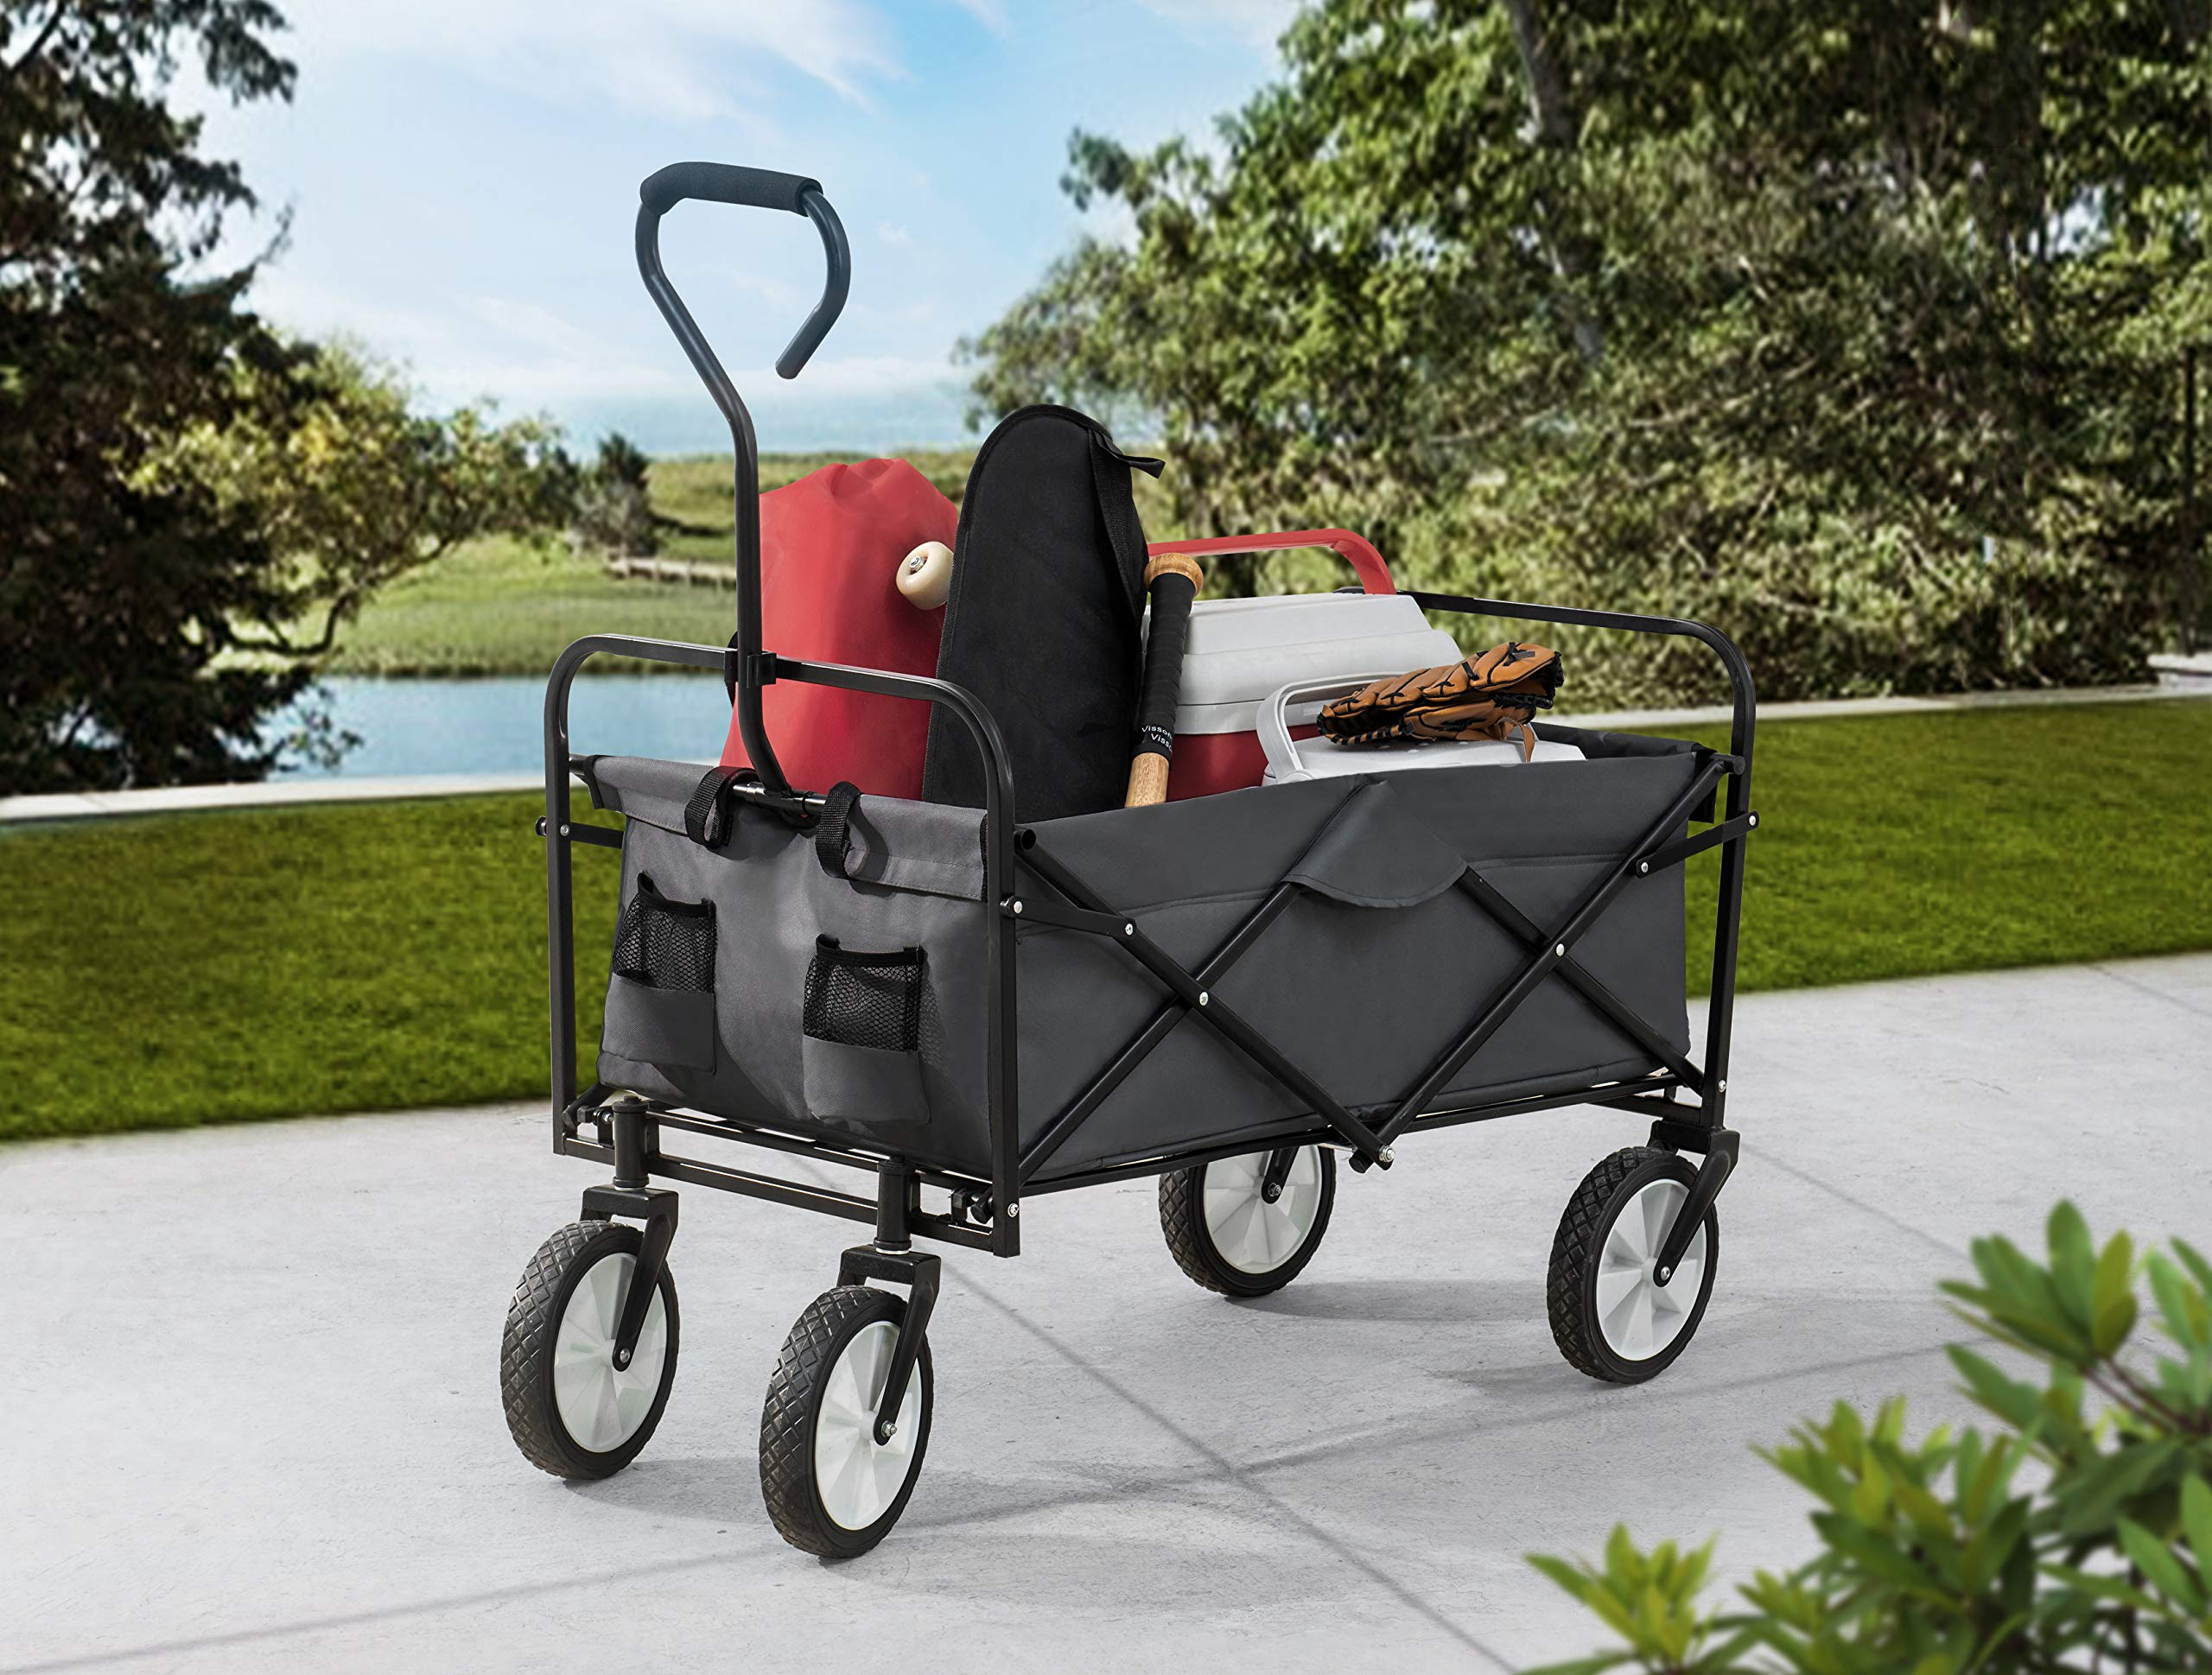 S2 Lifestyle Brazee Collapsible Folding Wagon Cart with Wheels, Gray by S2 Lifestyle